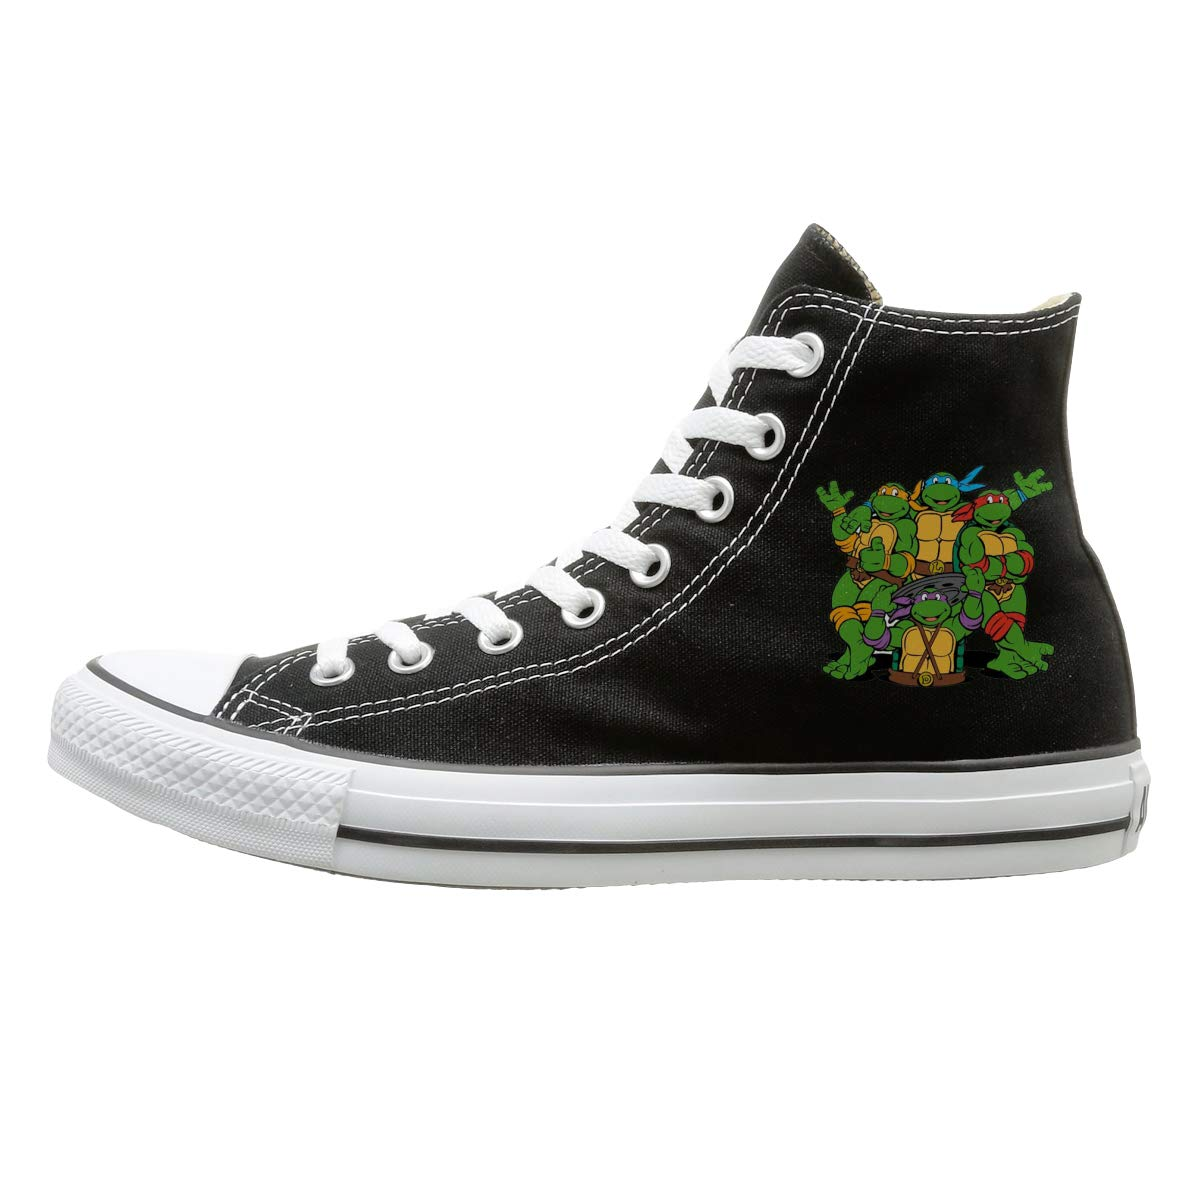 Aiguan Ninja Turtle Canvas Shoes High Top Design Black Sneakers Unisex Style